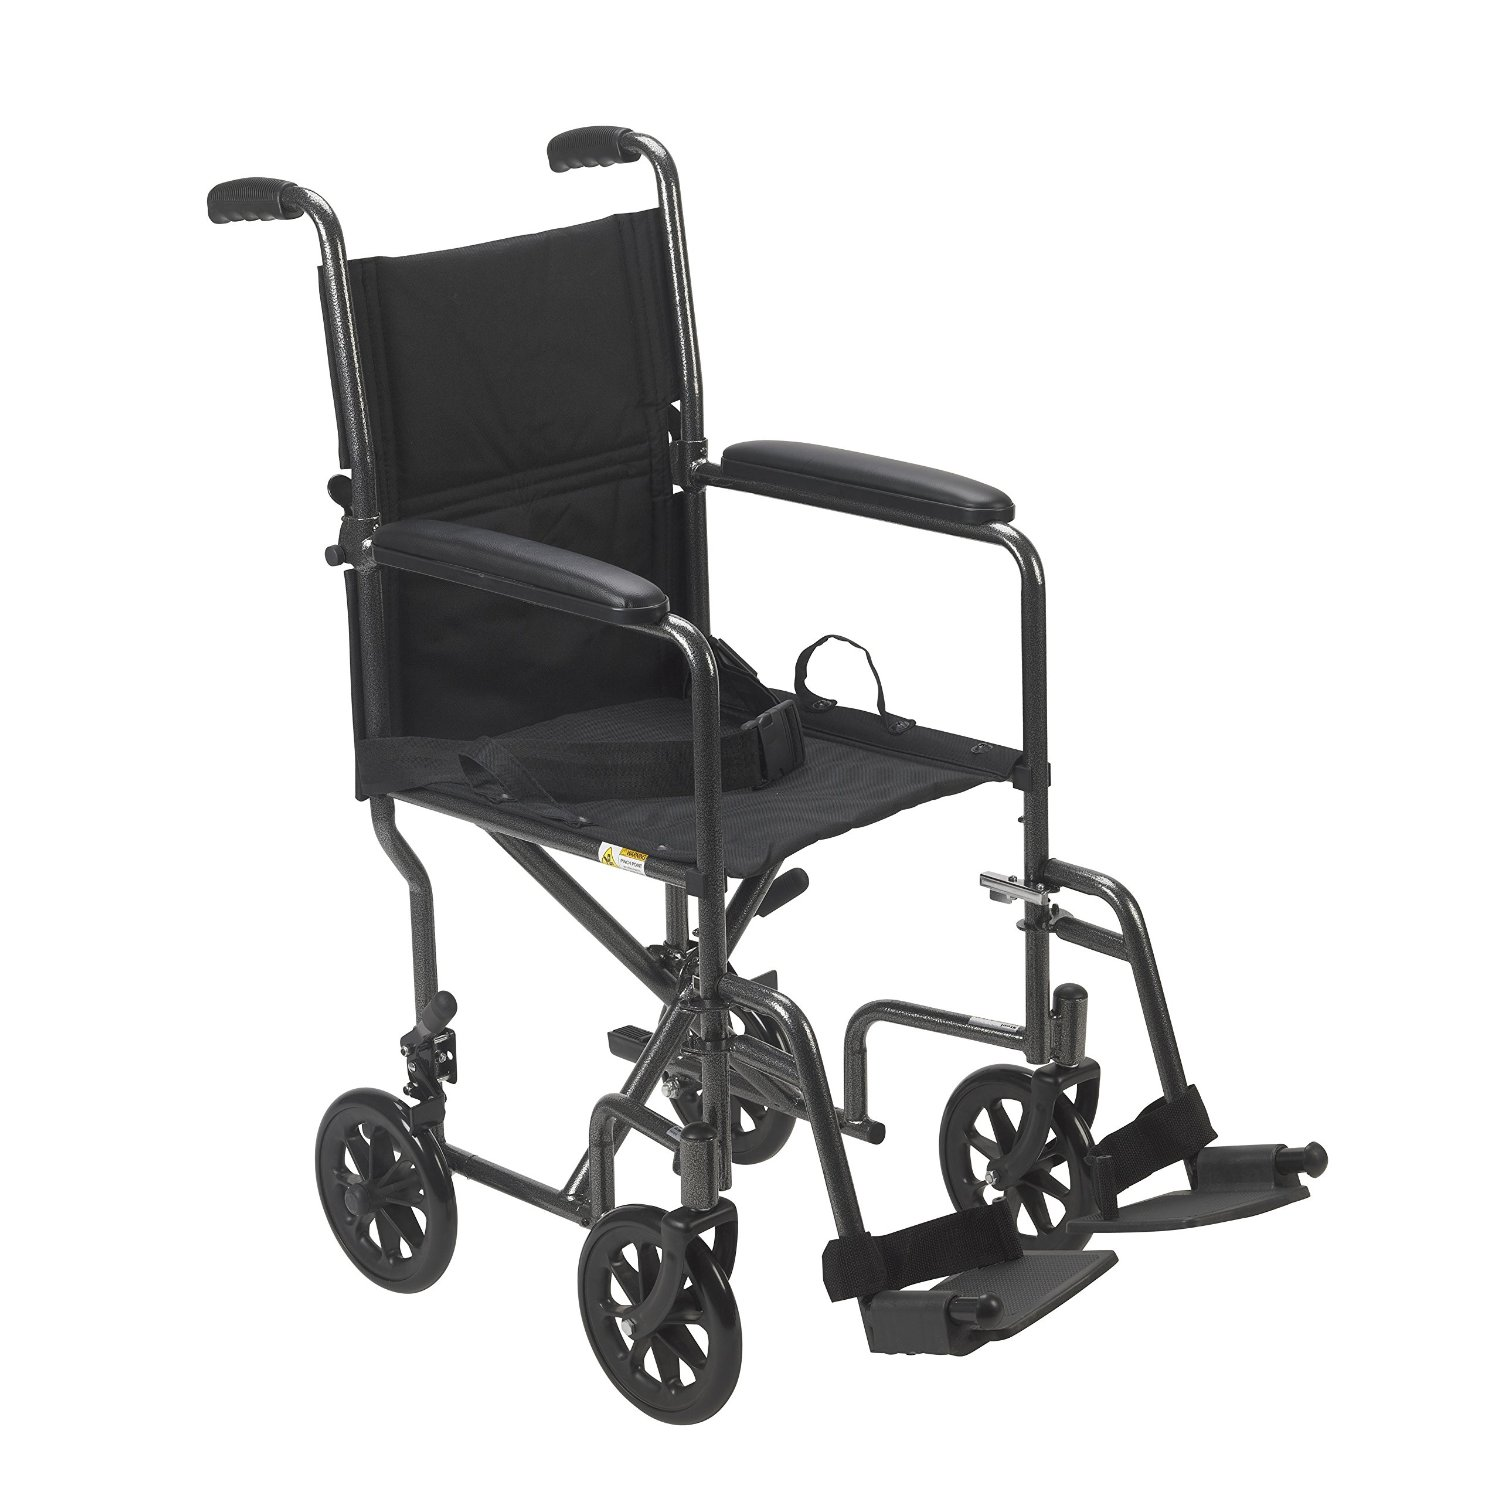 BestLightweightWheelchairReview